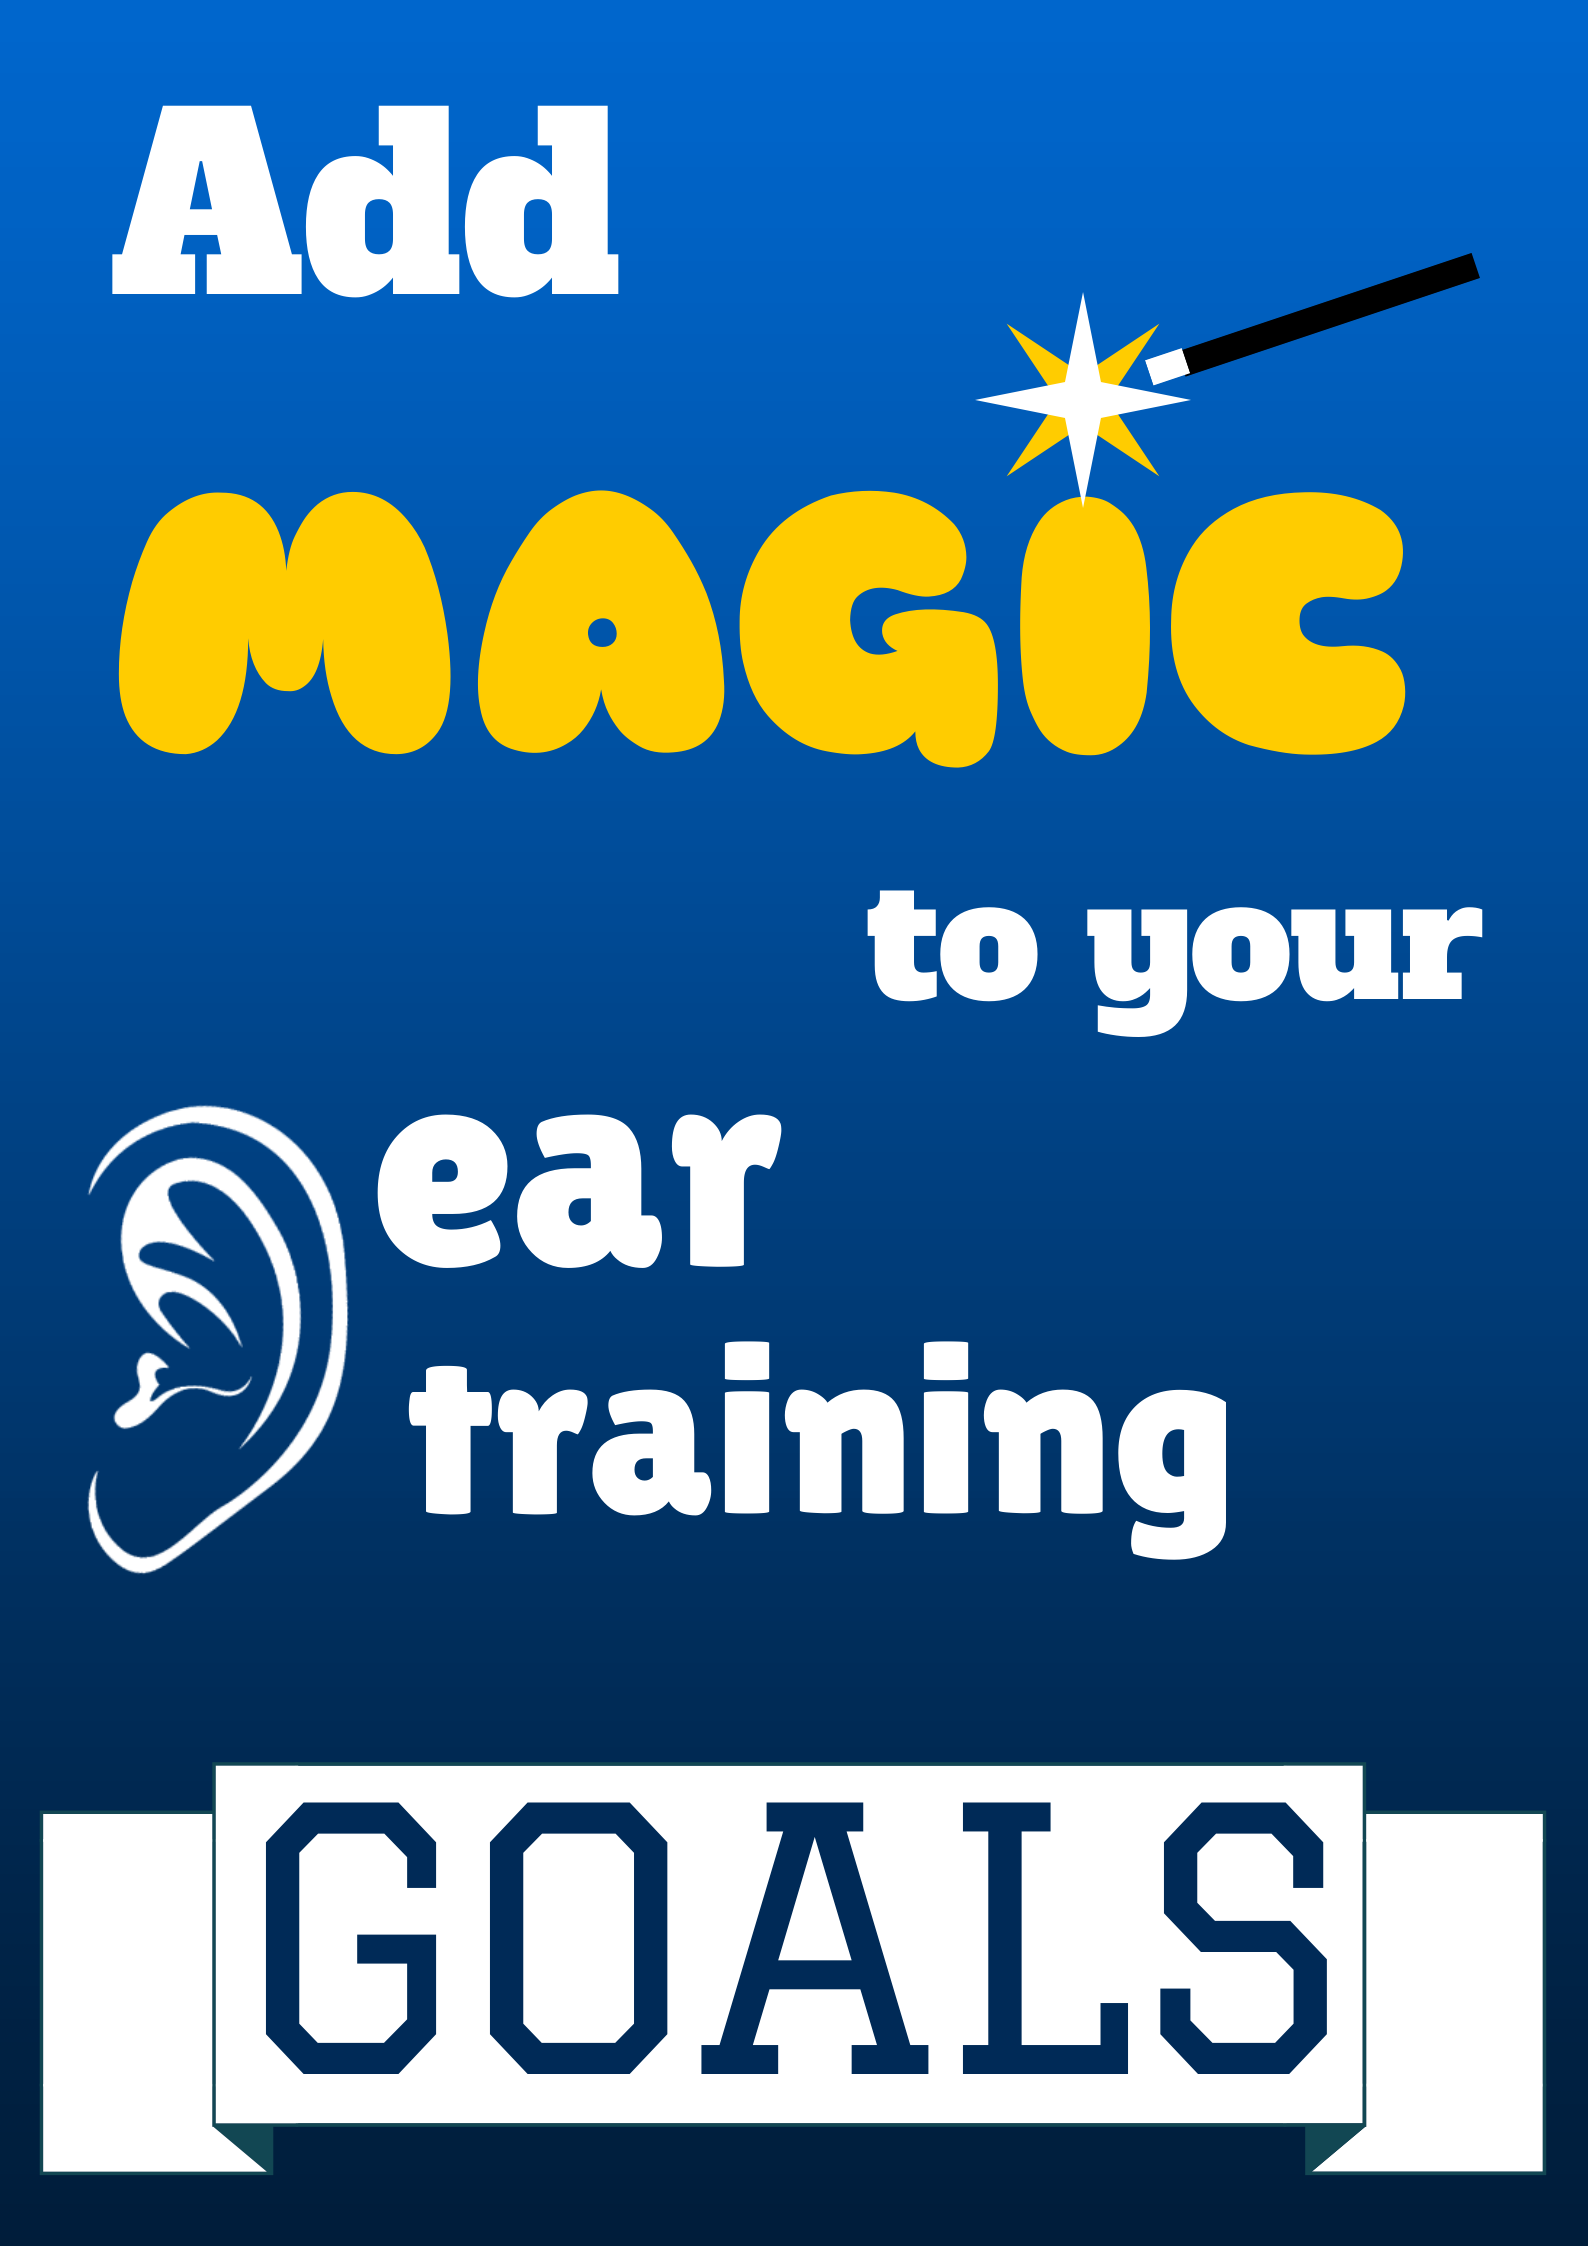 Add some MAGIC to your ear training goals